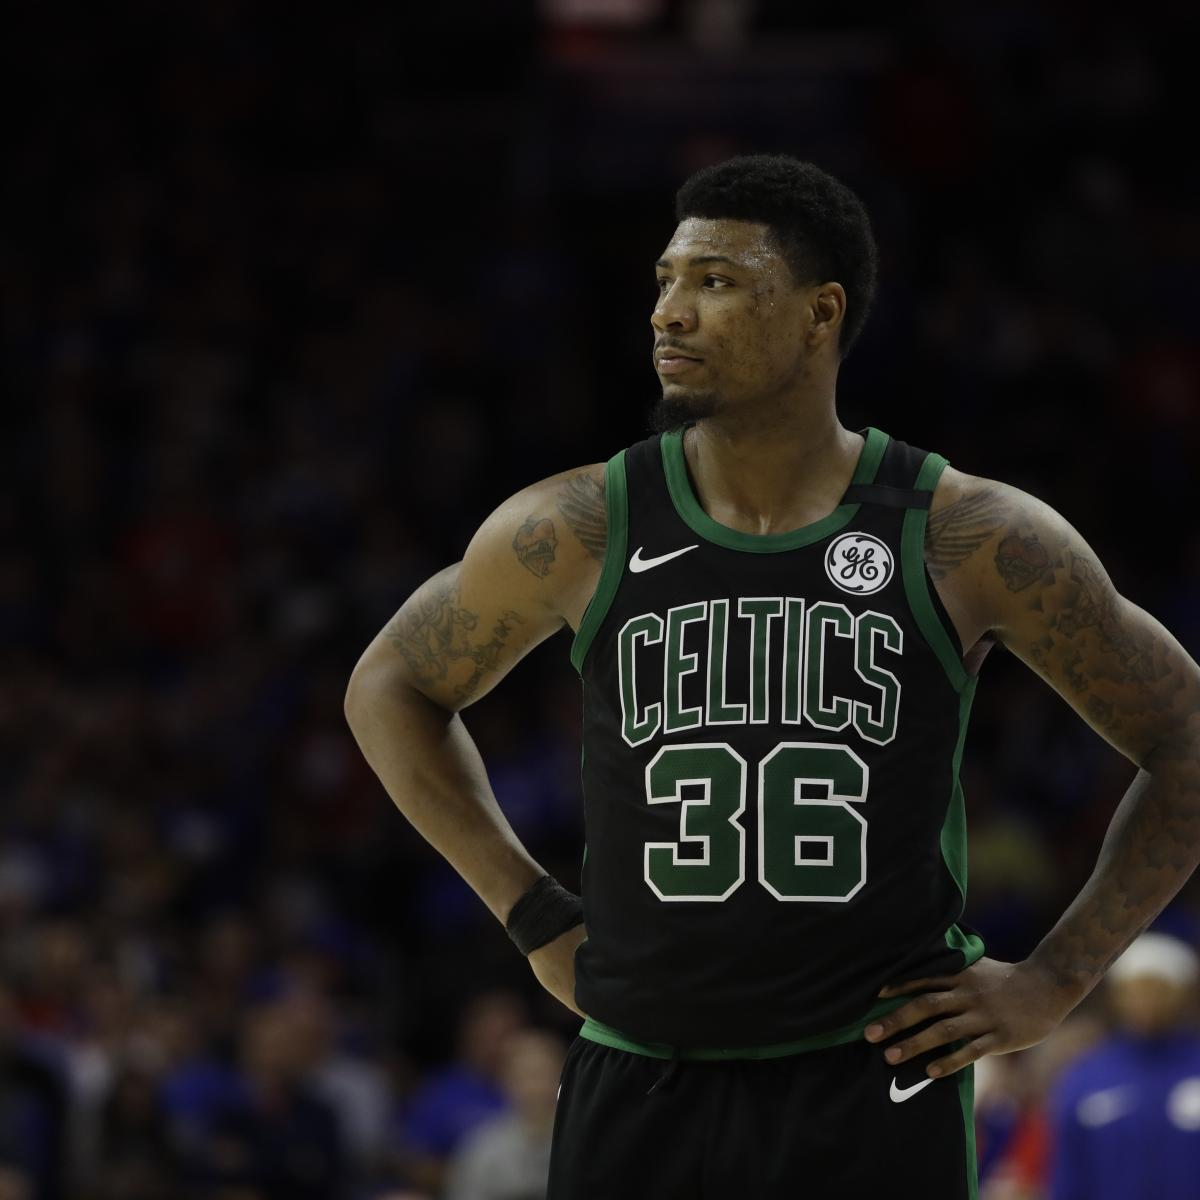 NBA Free Agents 2018: Rumors, Predictions for Marcus Smart, Tony Parker, More